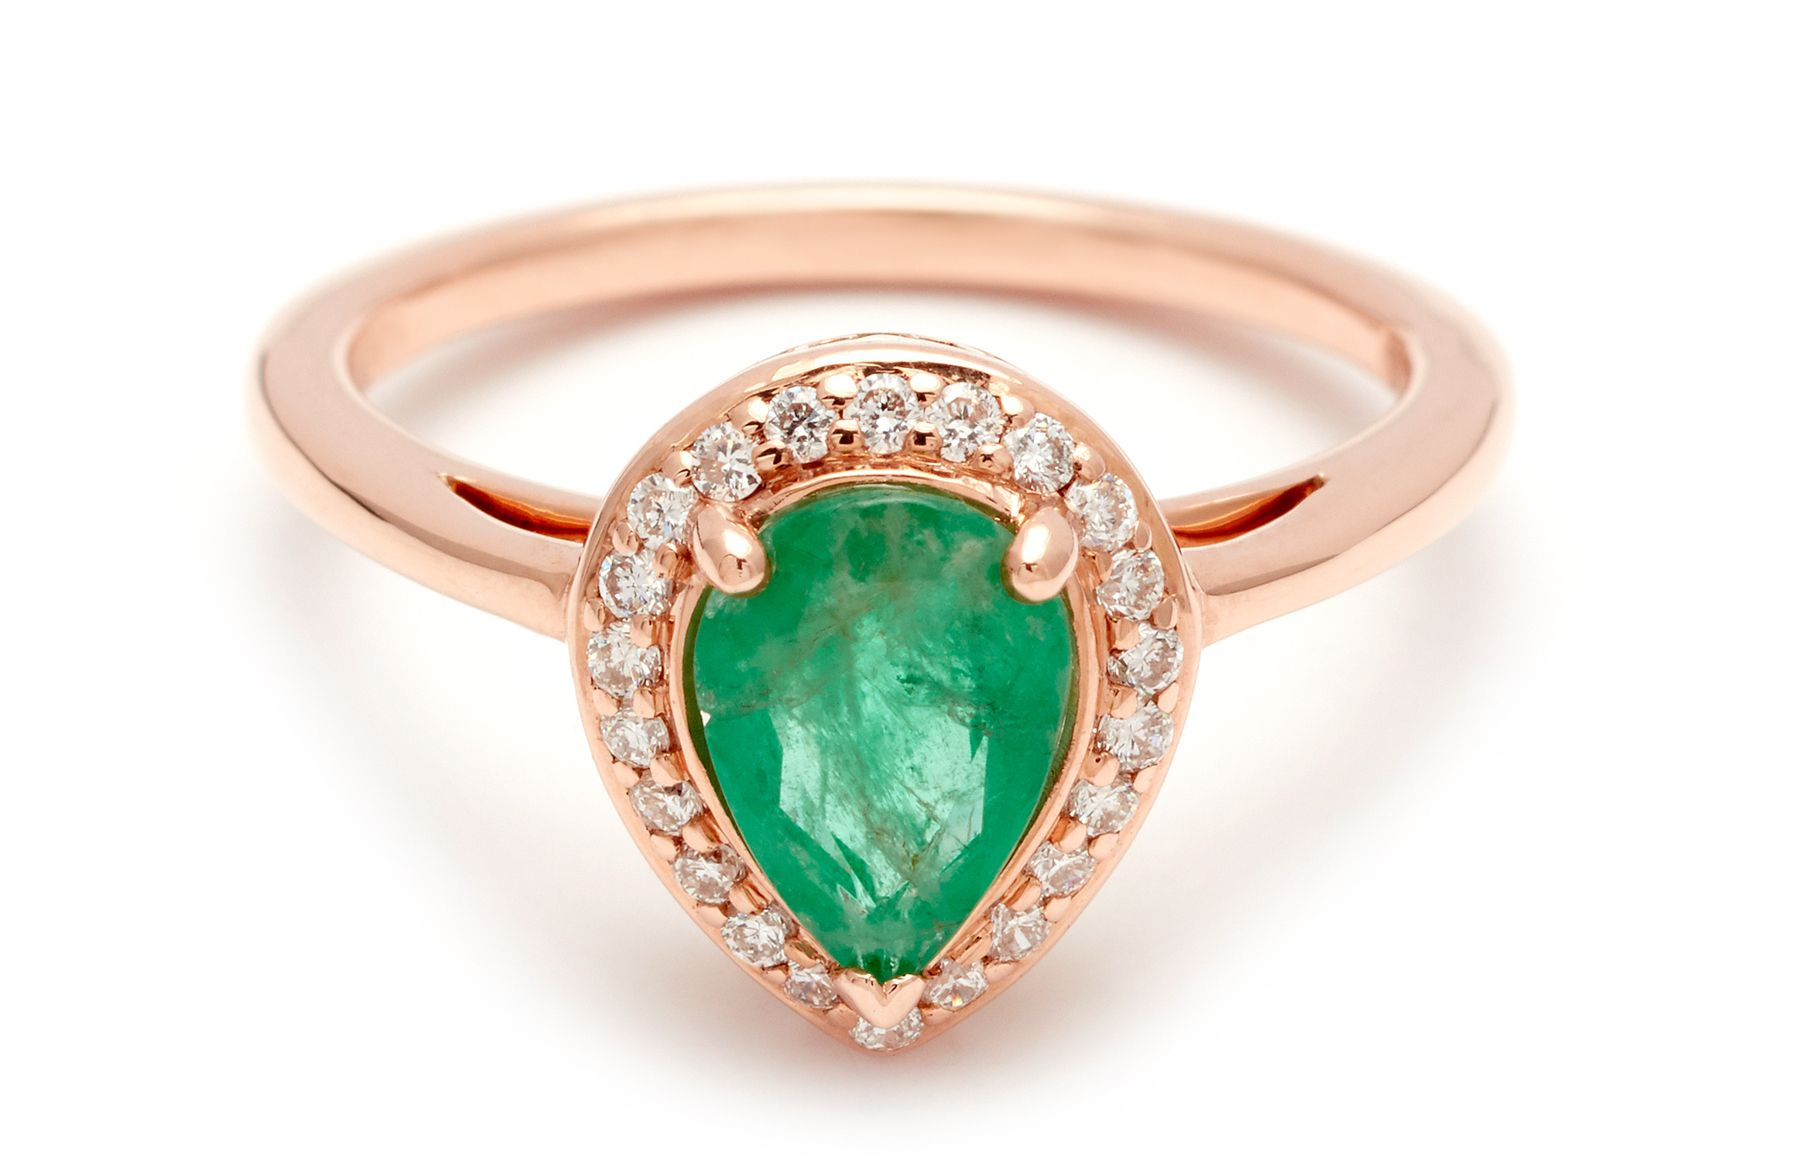 gems product jewery emerald martin in diamond ring at and rings maarten cut engagement st stores dk store best online